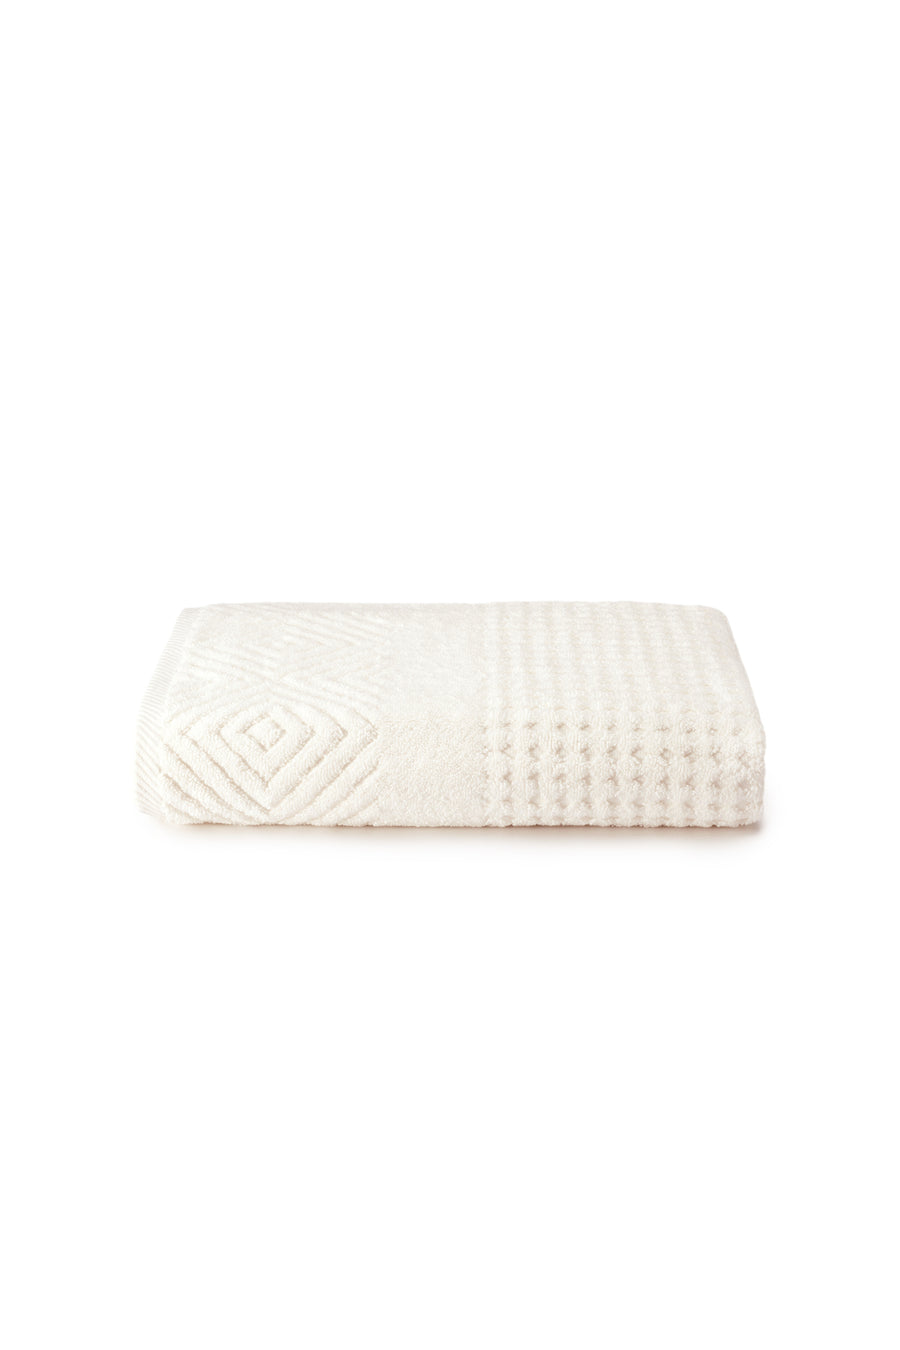 Jacquard Bath Towel - Organic Cotton Jacquard - testing23451234 - Towels